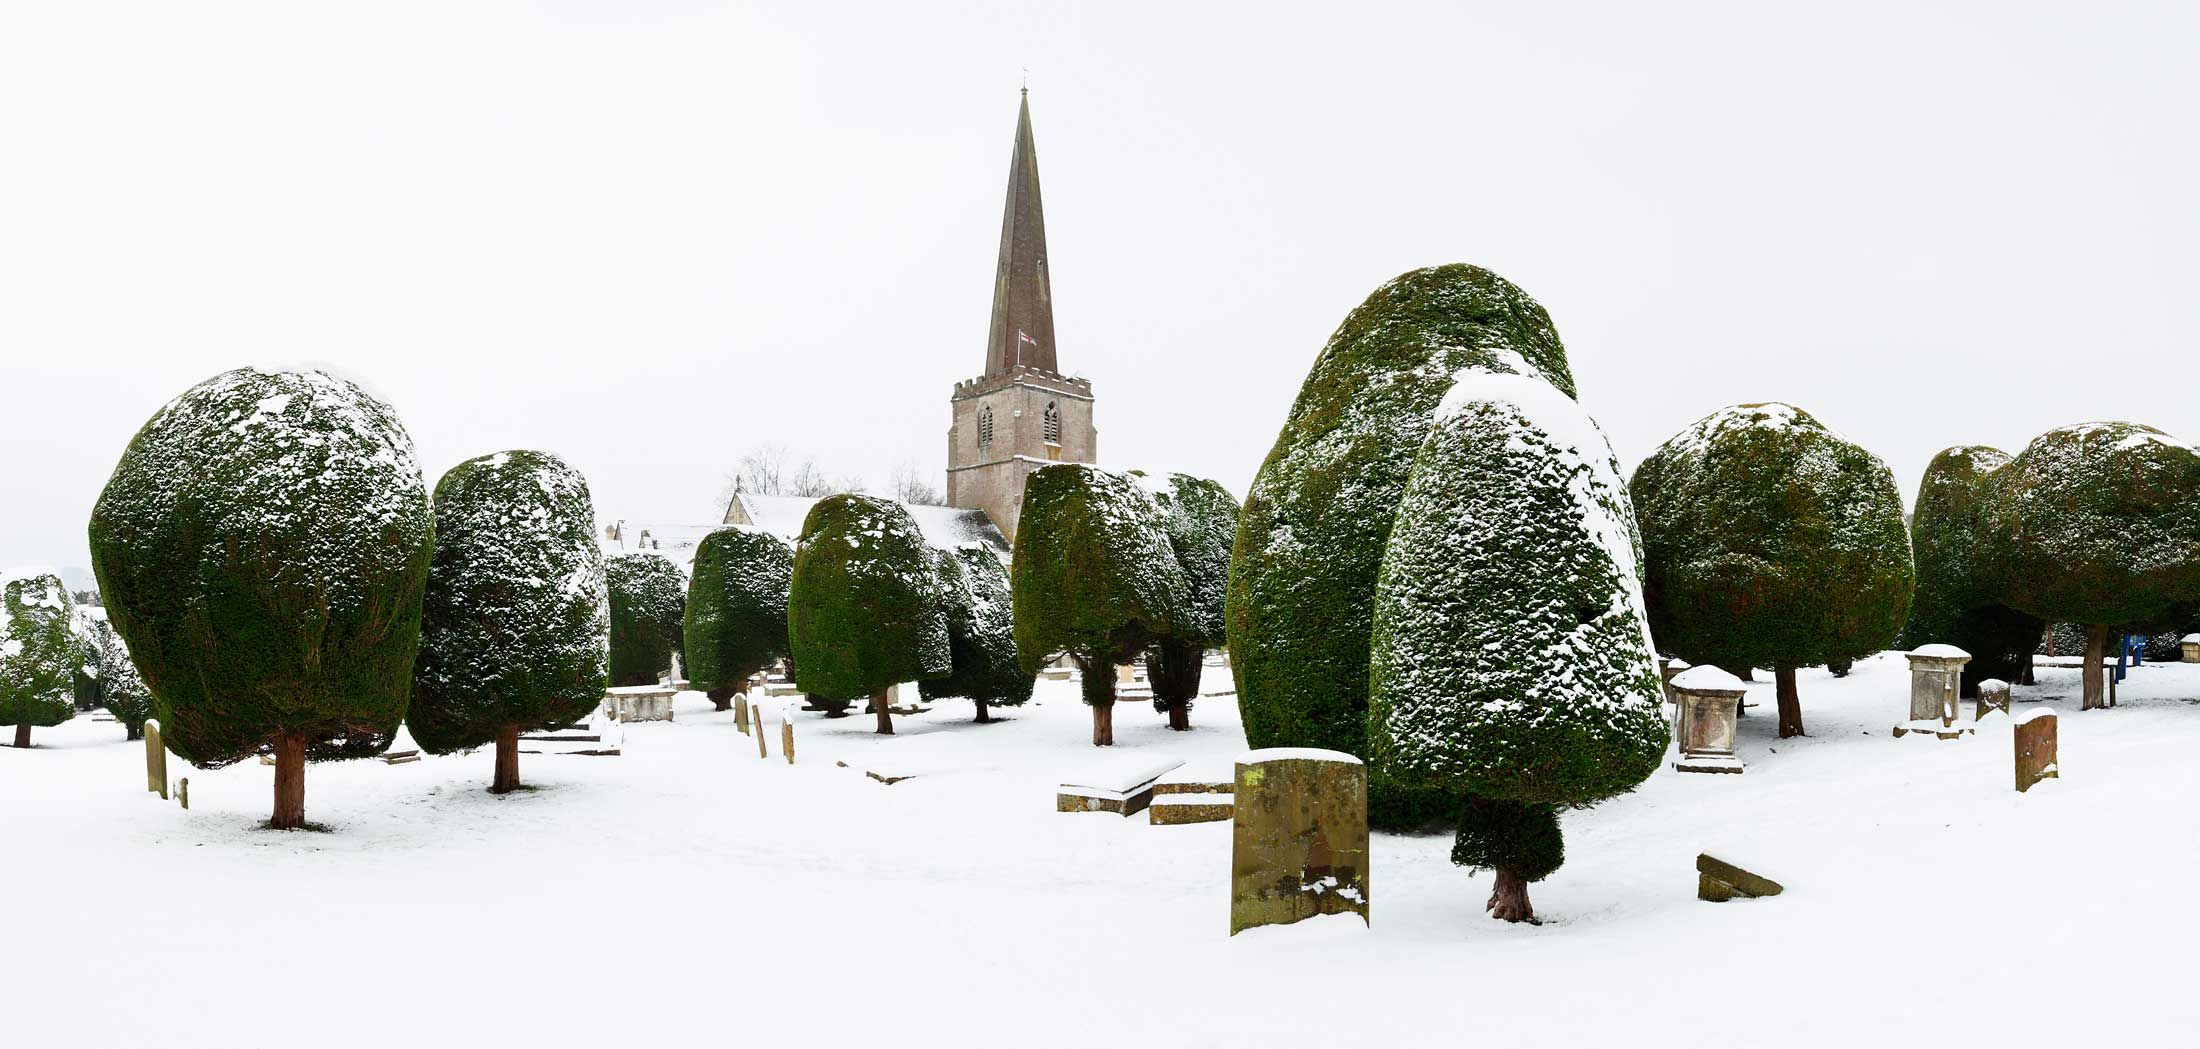 Yew Trees and Church in Snow